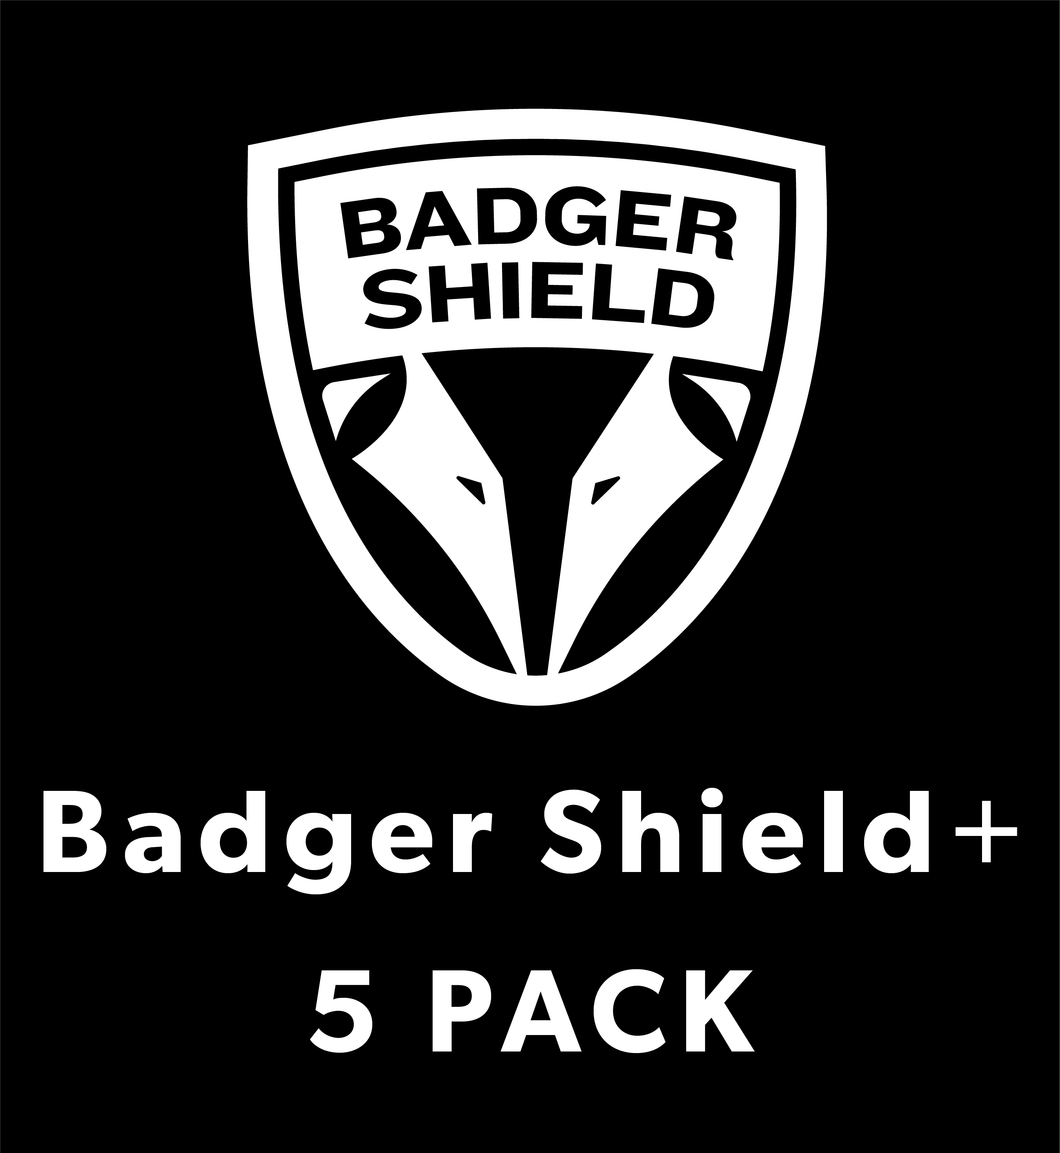 Badger Shield+ (5 Pack)